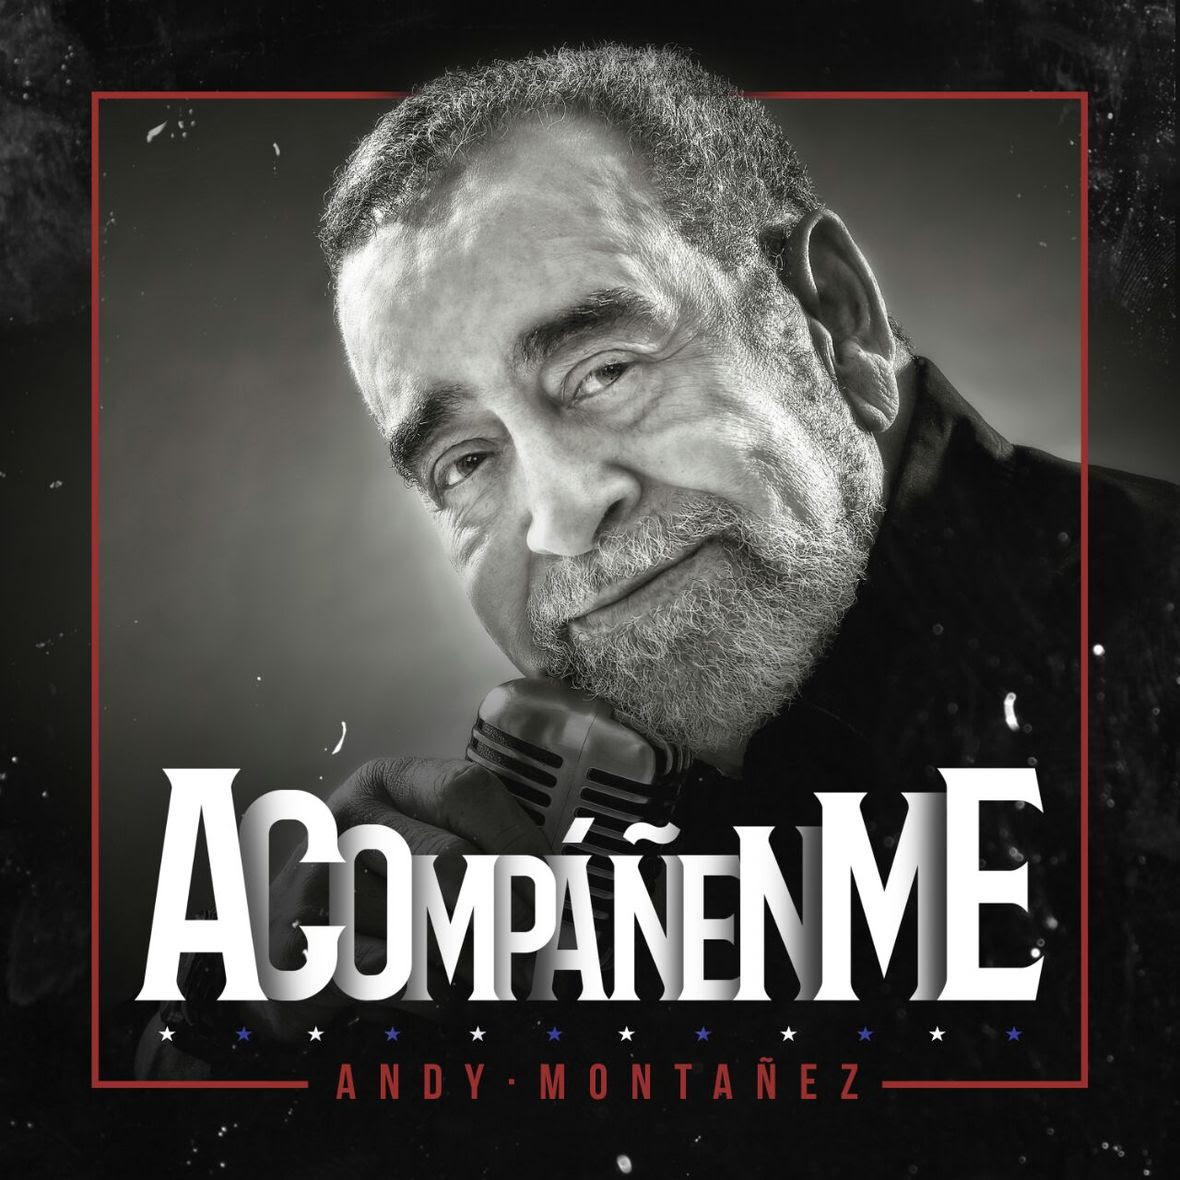 andy-montanes